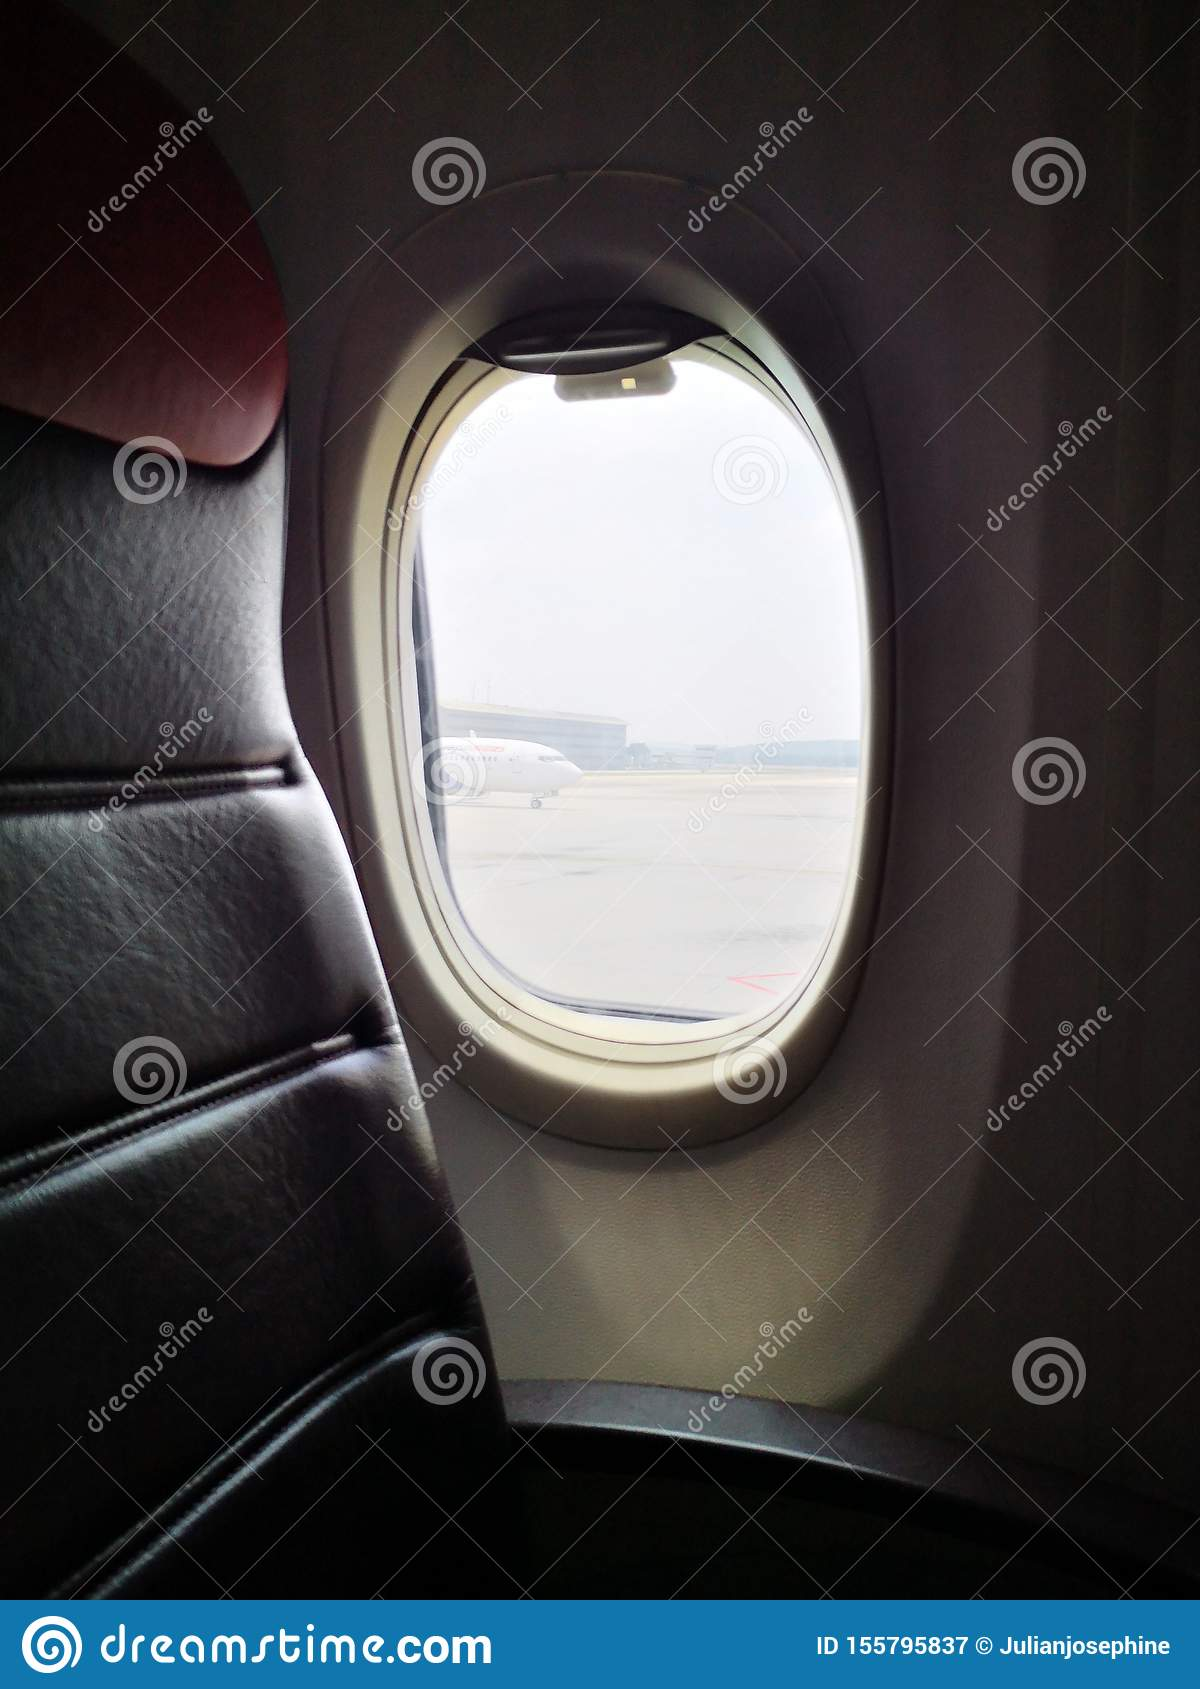 Closeup With Plane Seat Background Looking Through Window Stock